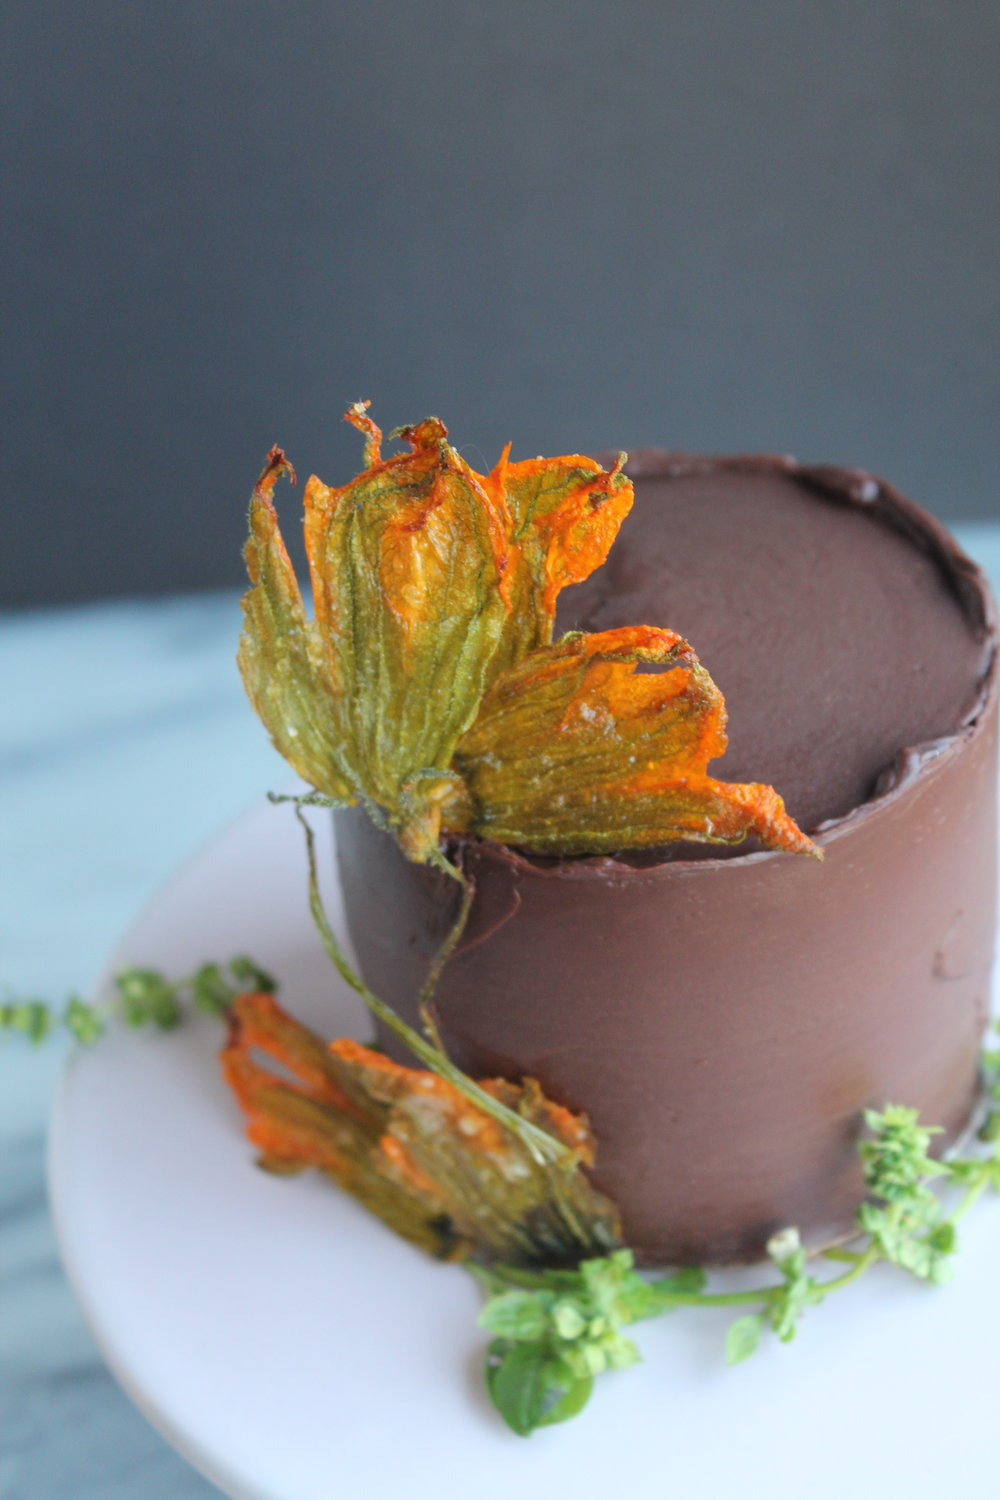 Chocolate Zucchini Cake with Candied Squash Blossoms Recipe